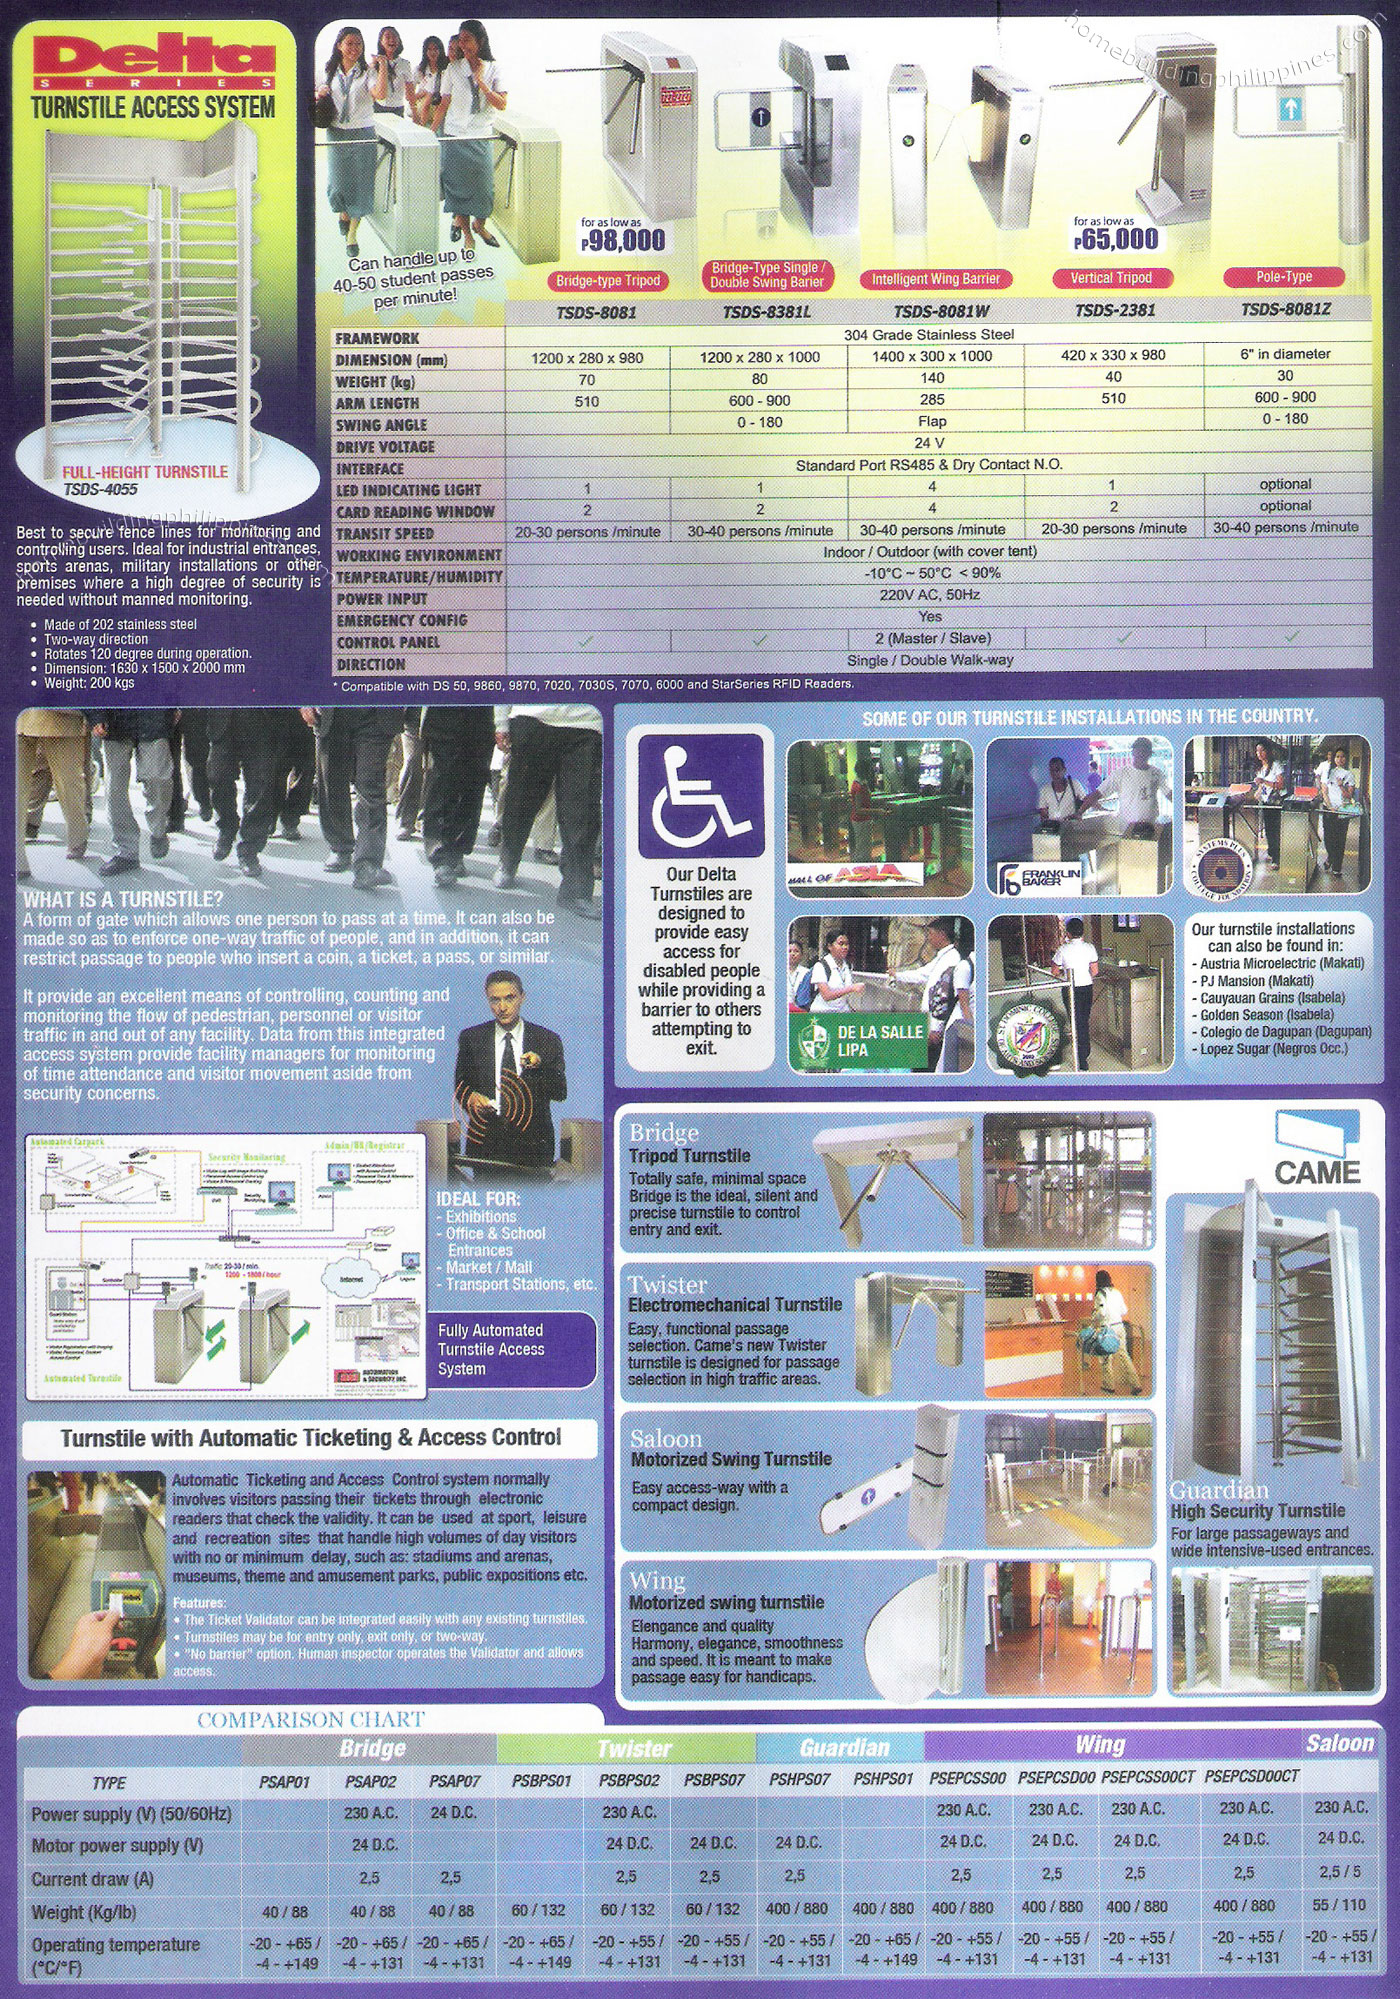 Delta Turnstile Access Control System Automatic Ticketing